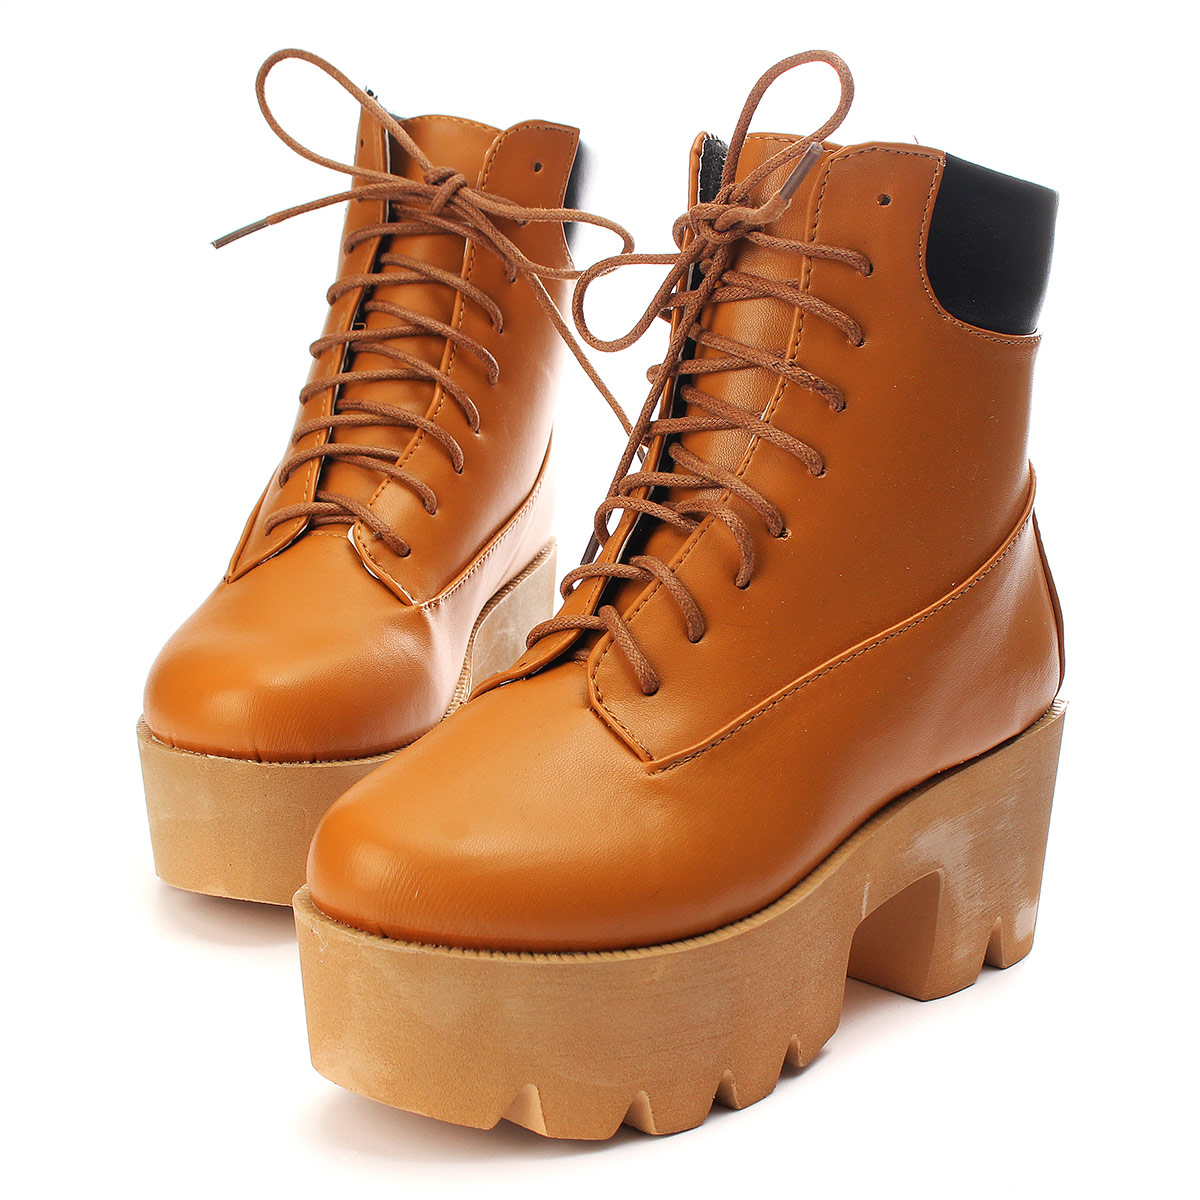 womens chunky wedge platform lace up ankle boots creepers